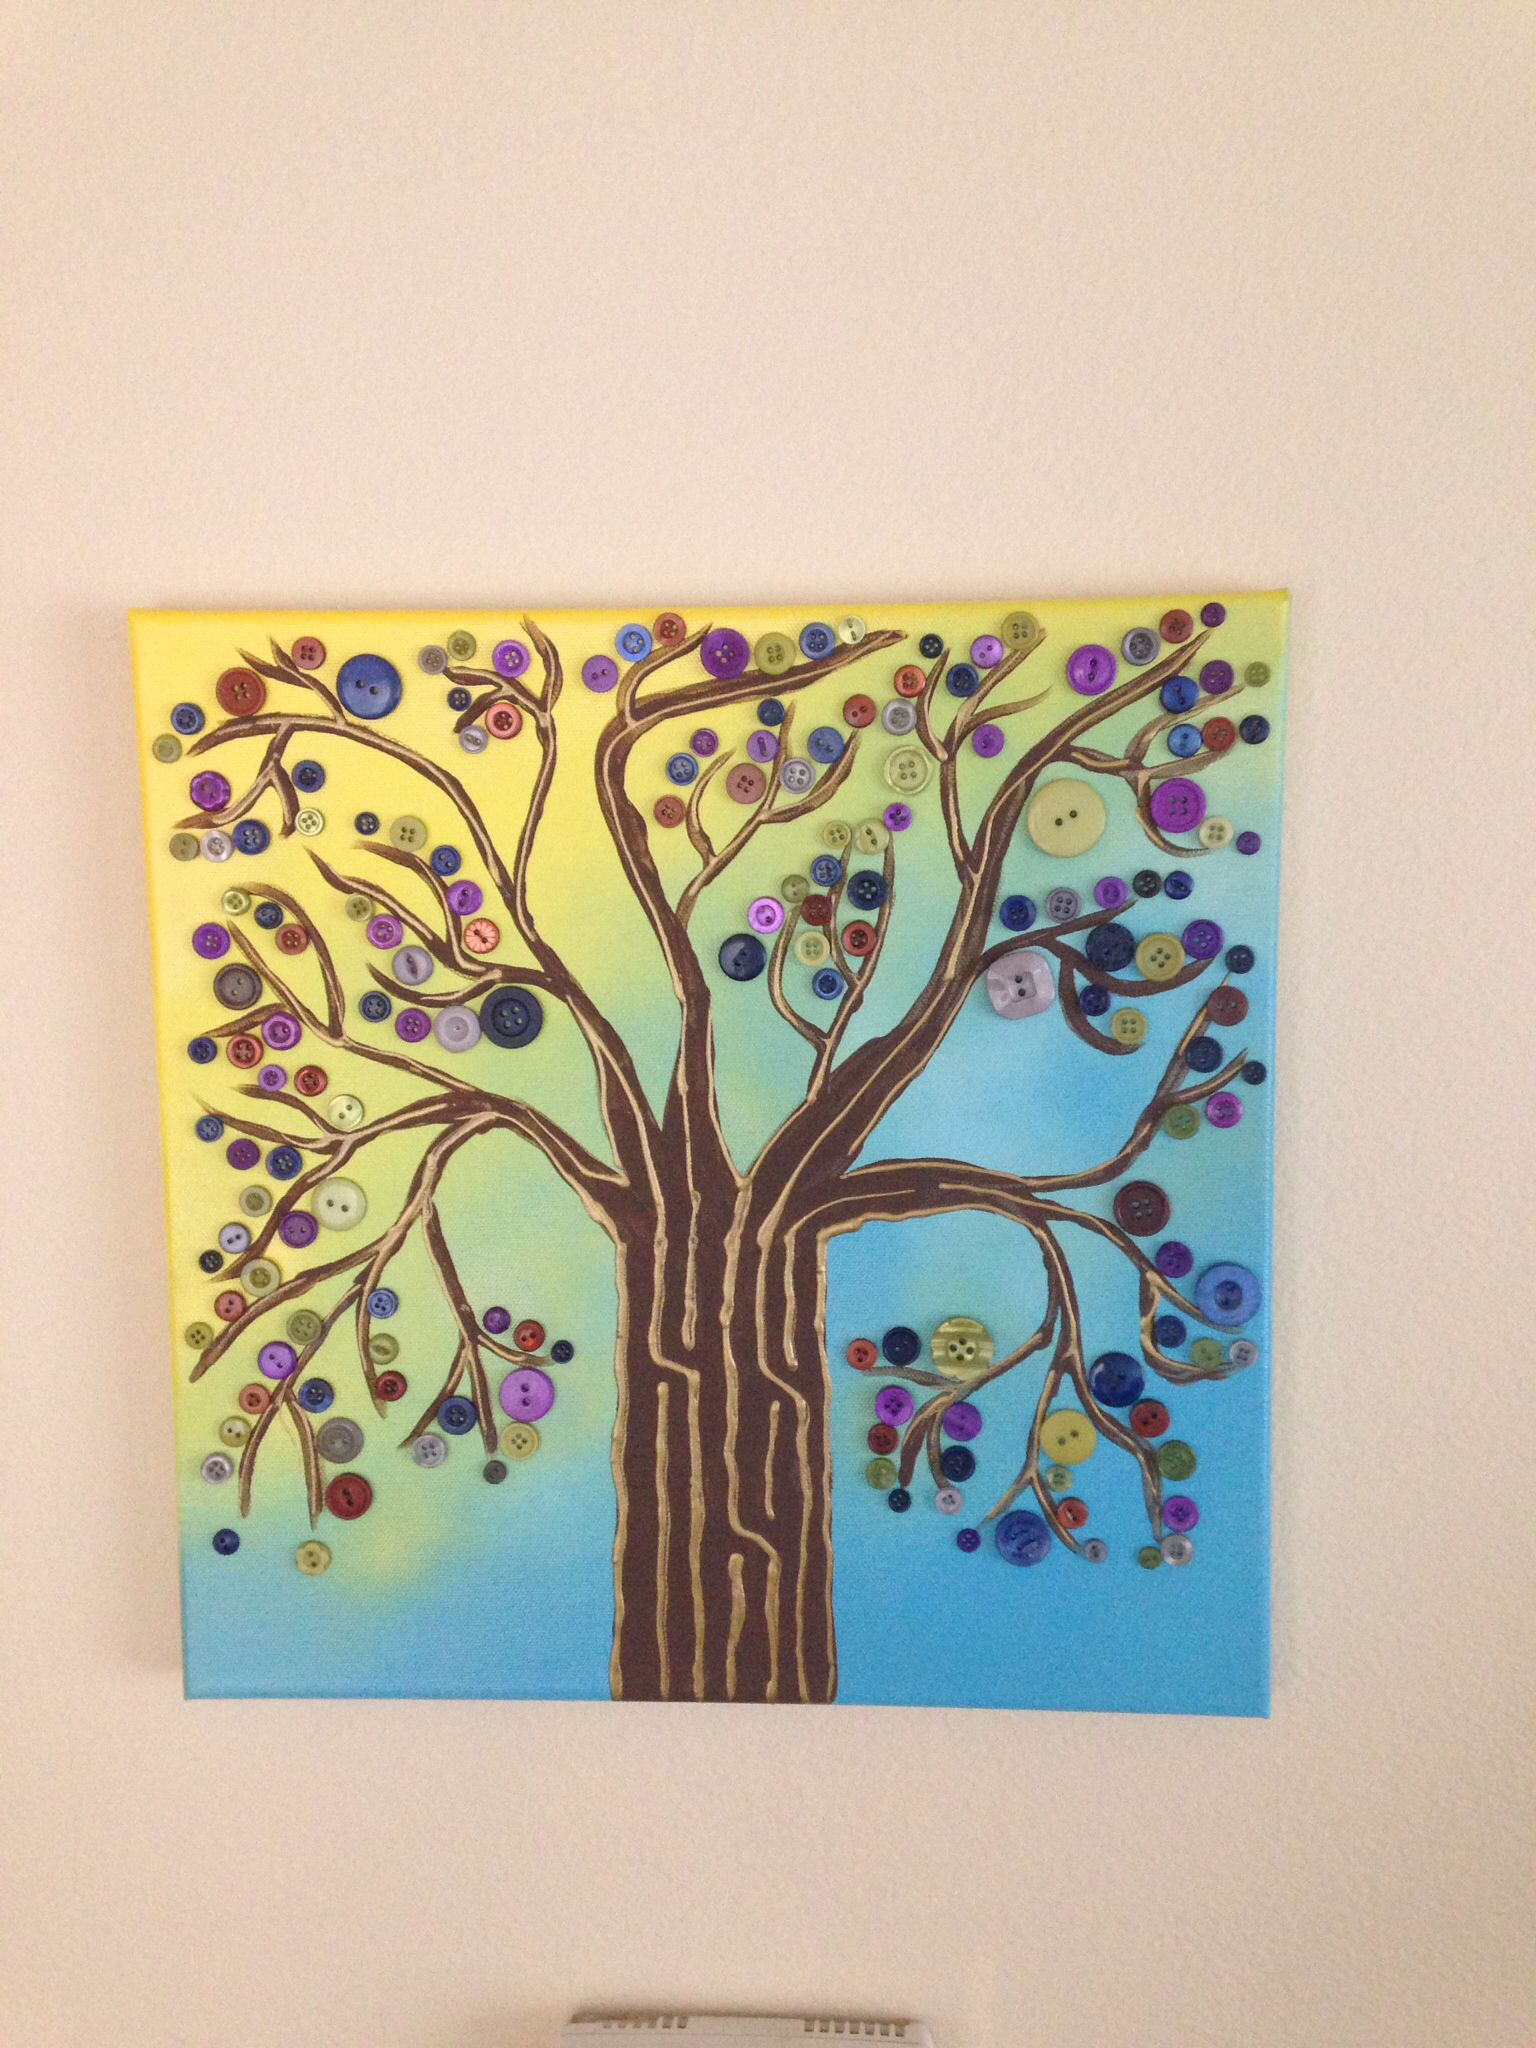 Completed Button Tree Pinterest Craft Project This Is A Square